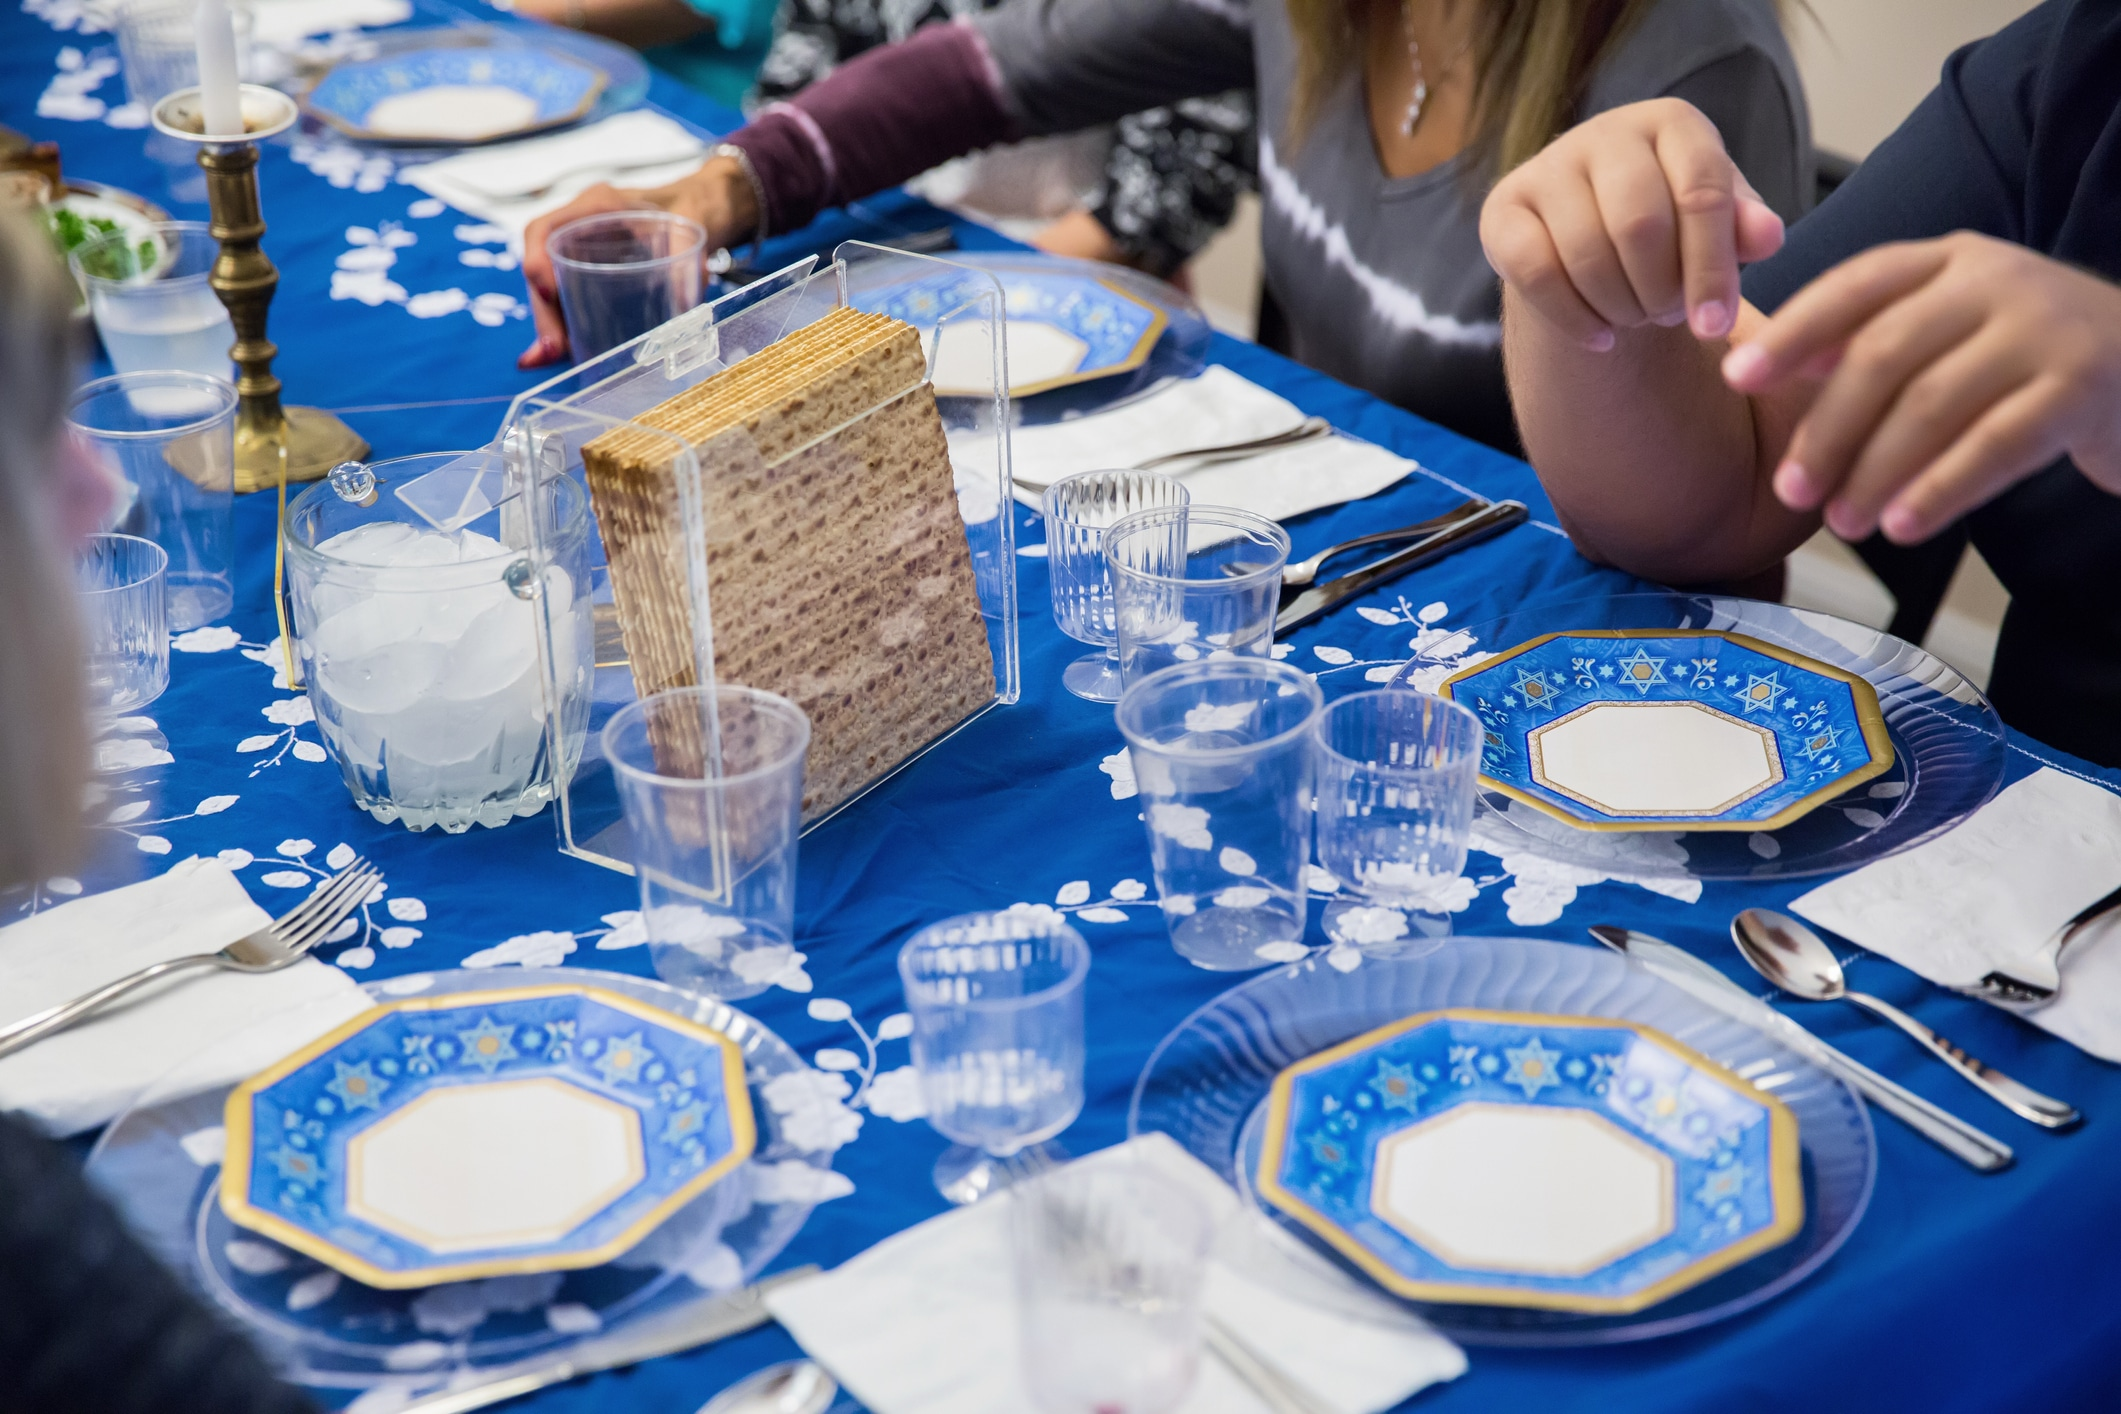 Participating in a seder at a table set for a traditional Passover